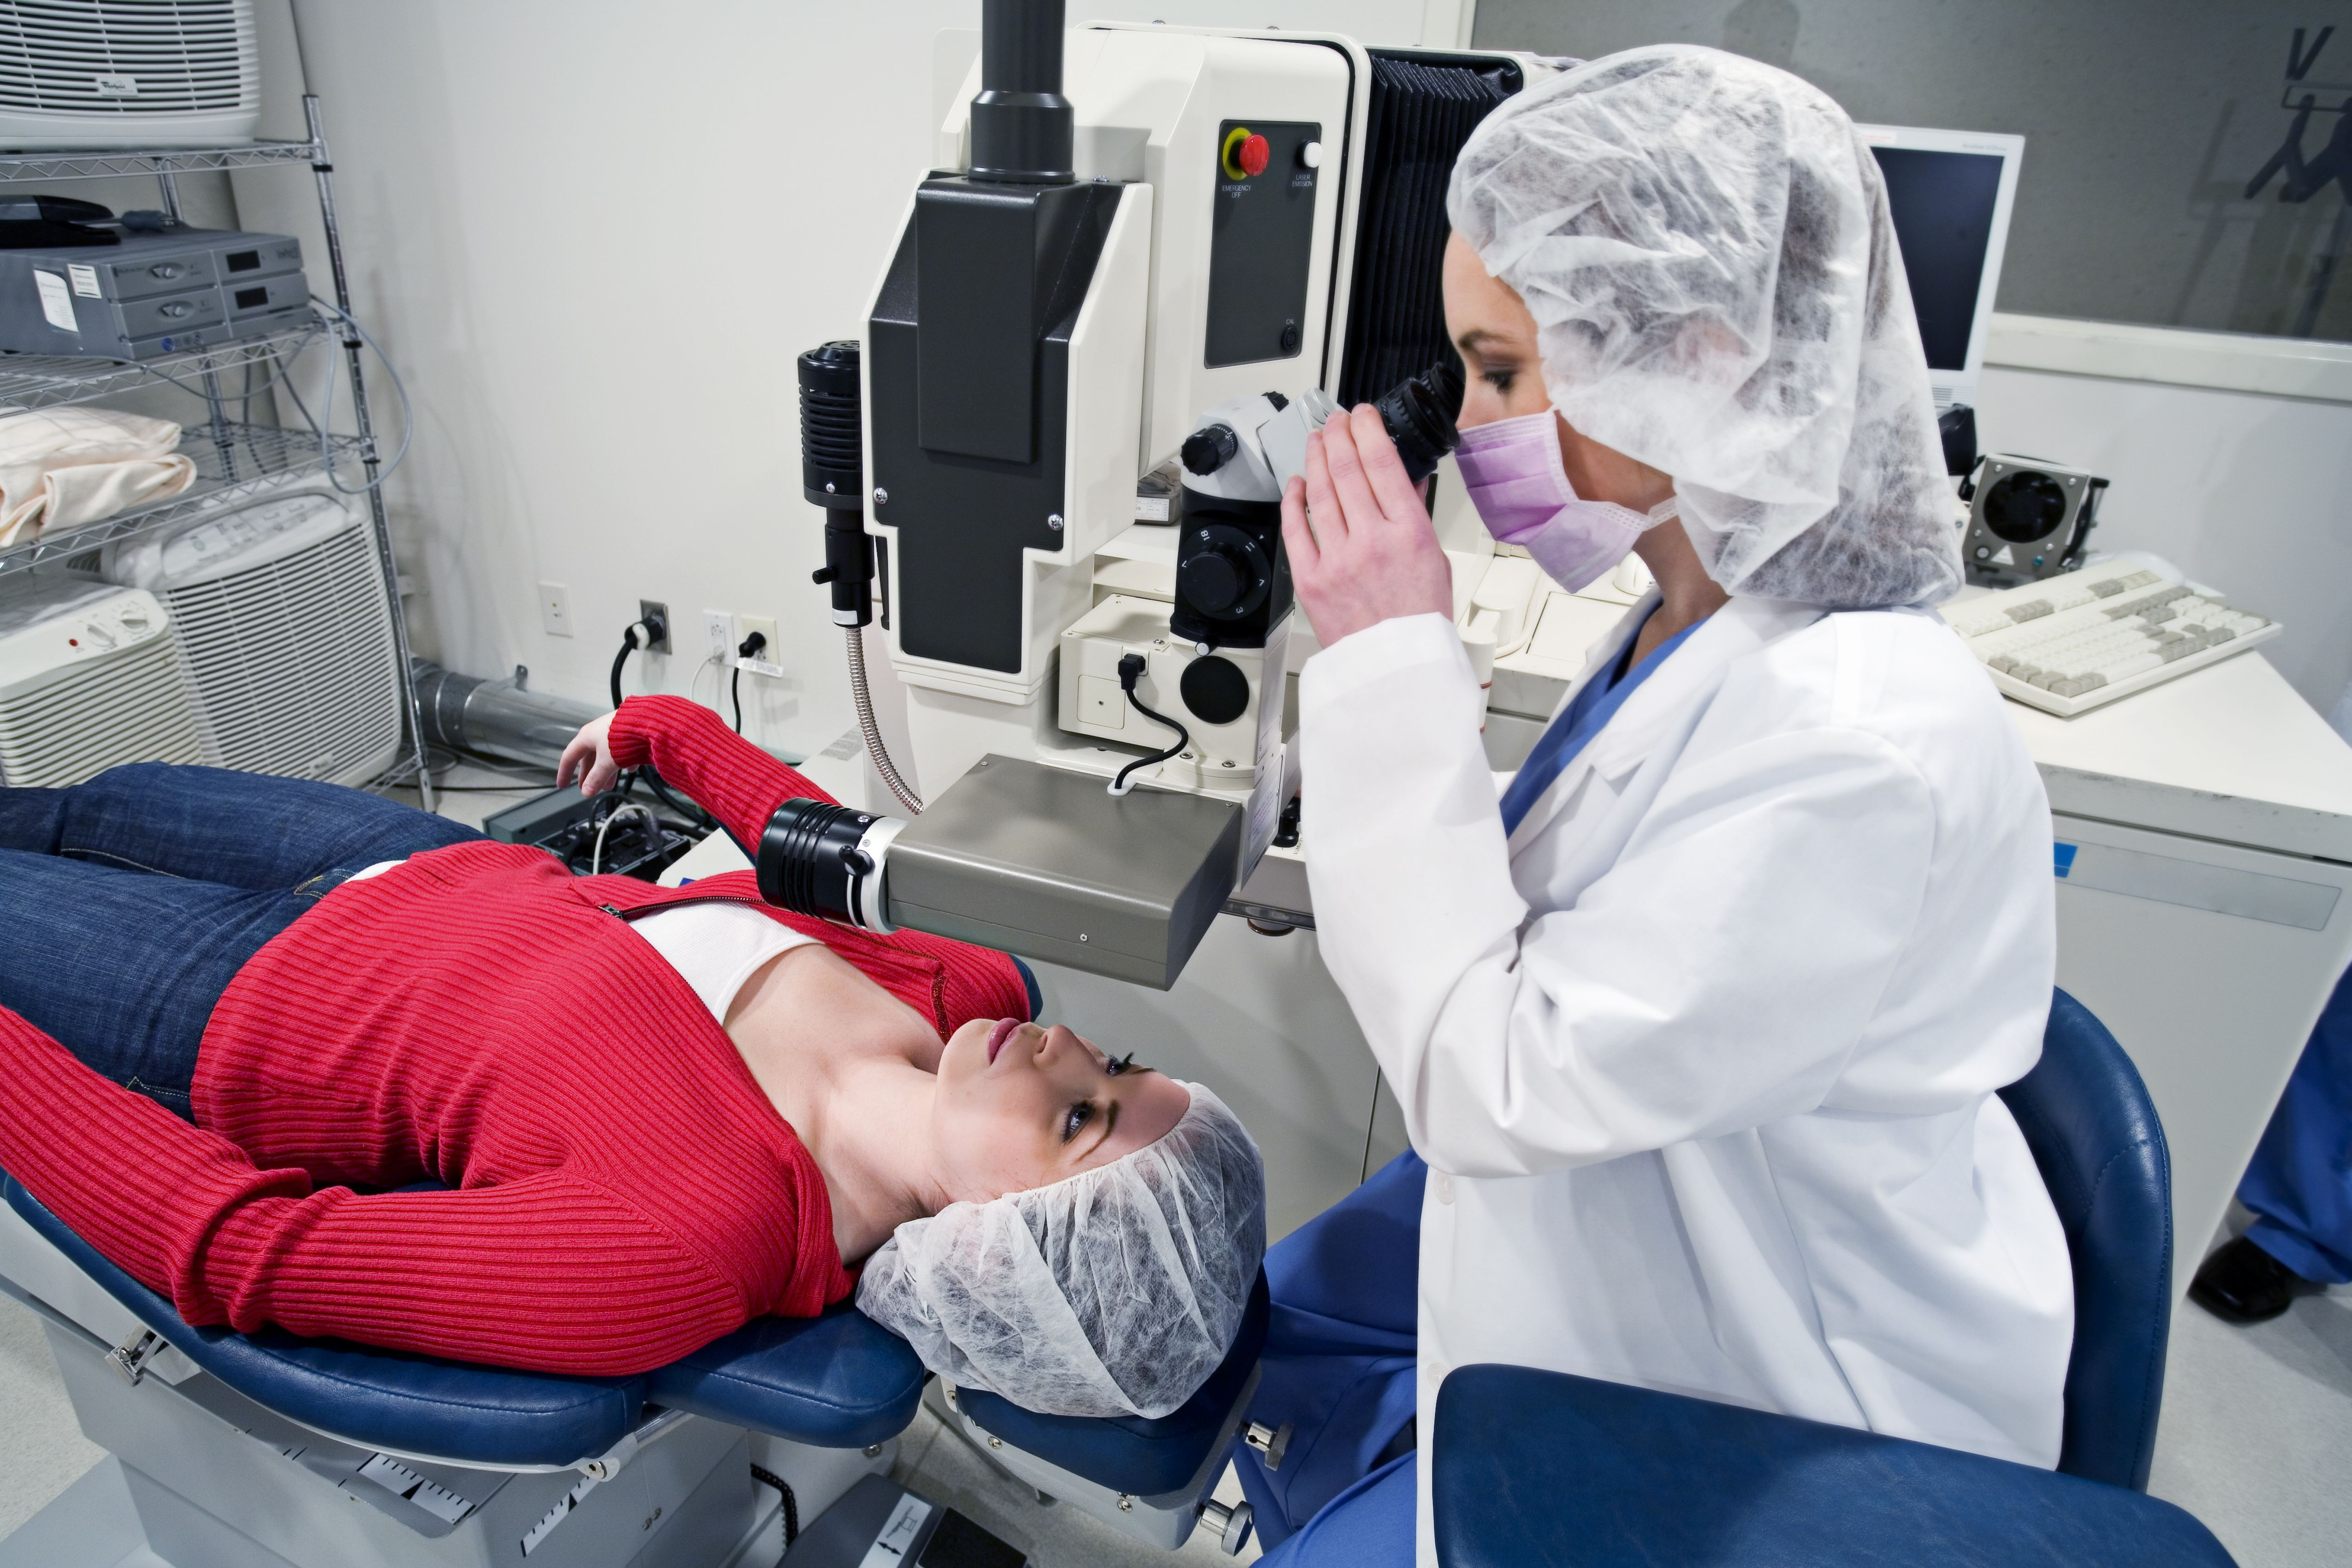 patient and doctor Preparing for LASIK eye surgery